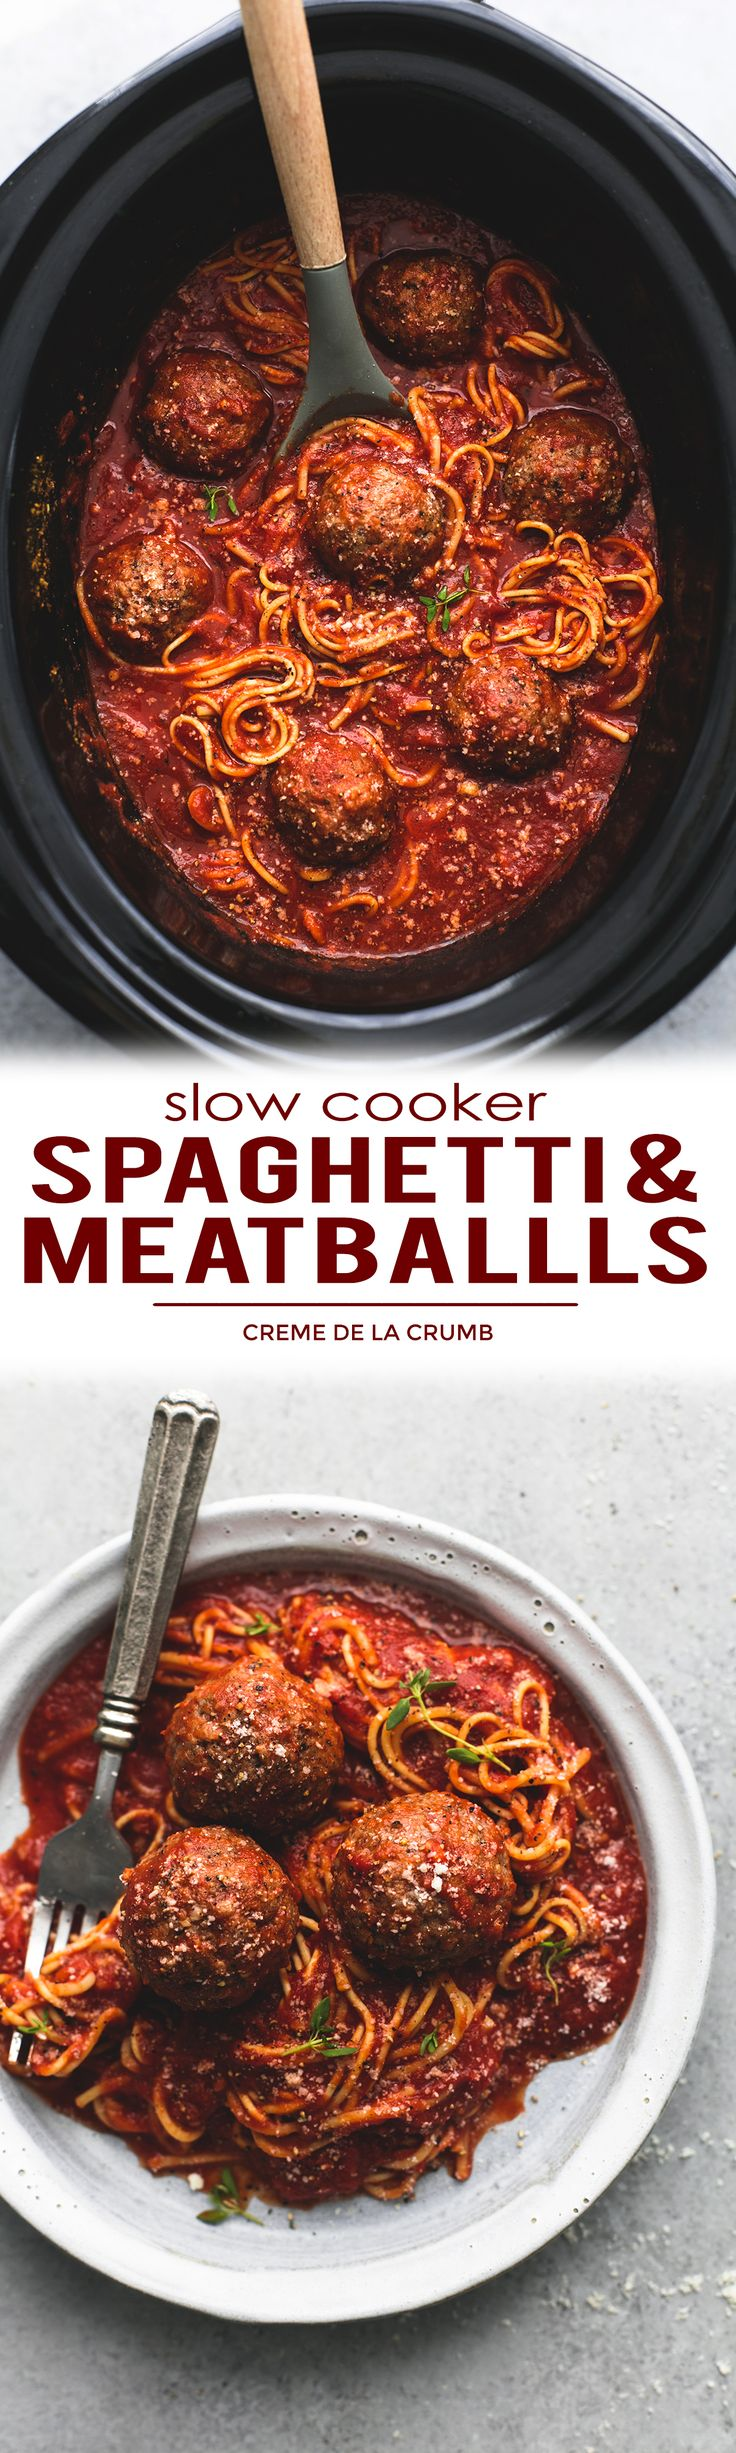 Easy Slow Cooker Spaghetti And Meatballs - everything is made in the crockpot, even the noodles! | lecremedelacrumb.com